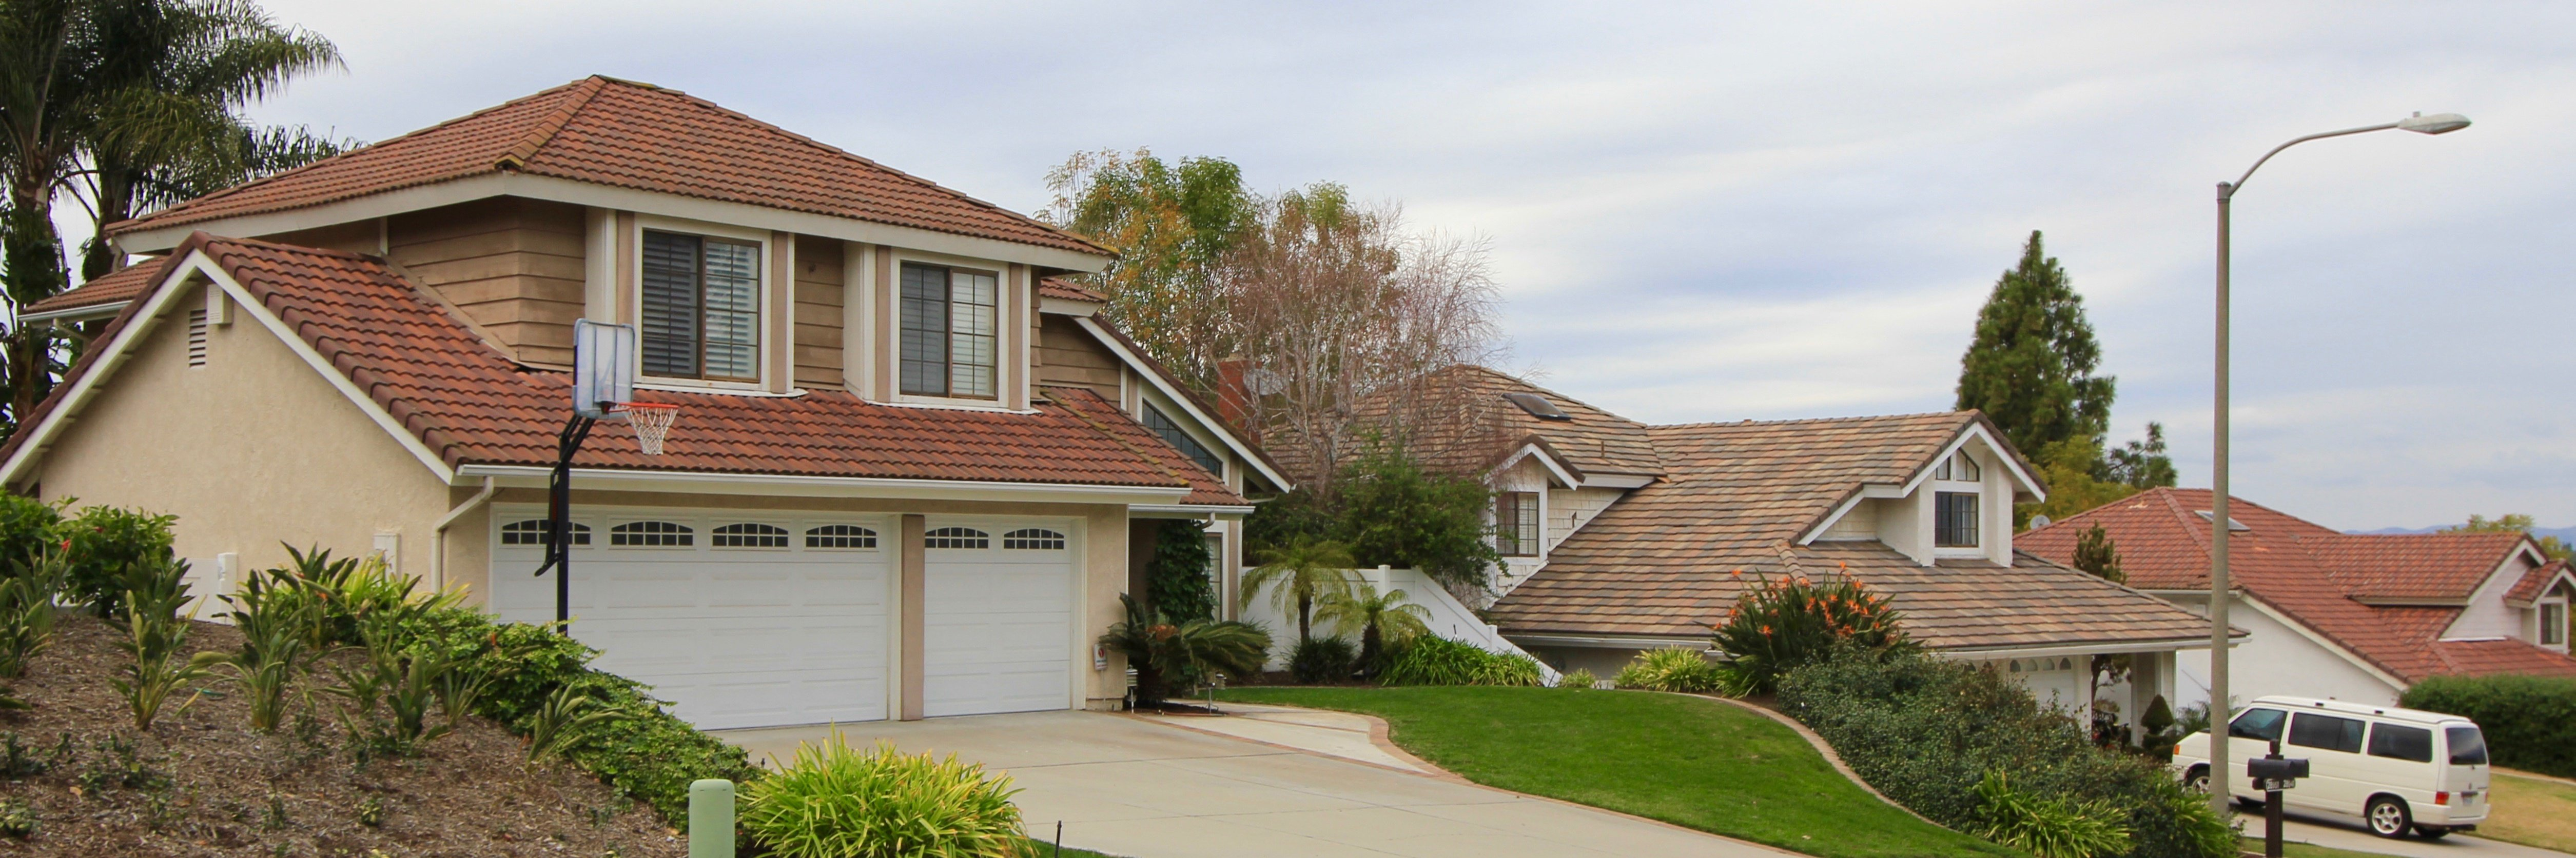 Westridge Estates is a neighborhood of homes located in Laguna Niguel California